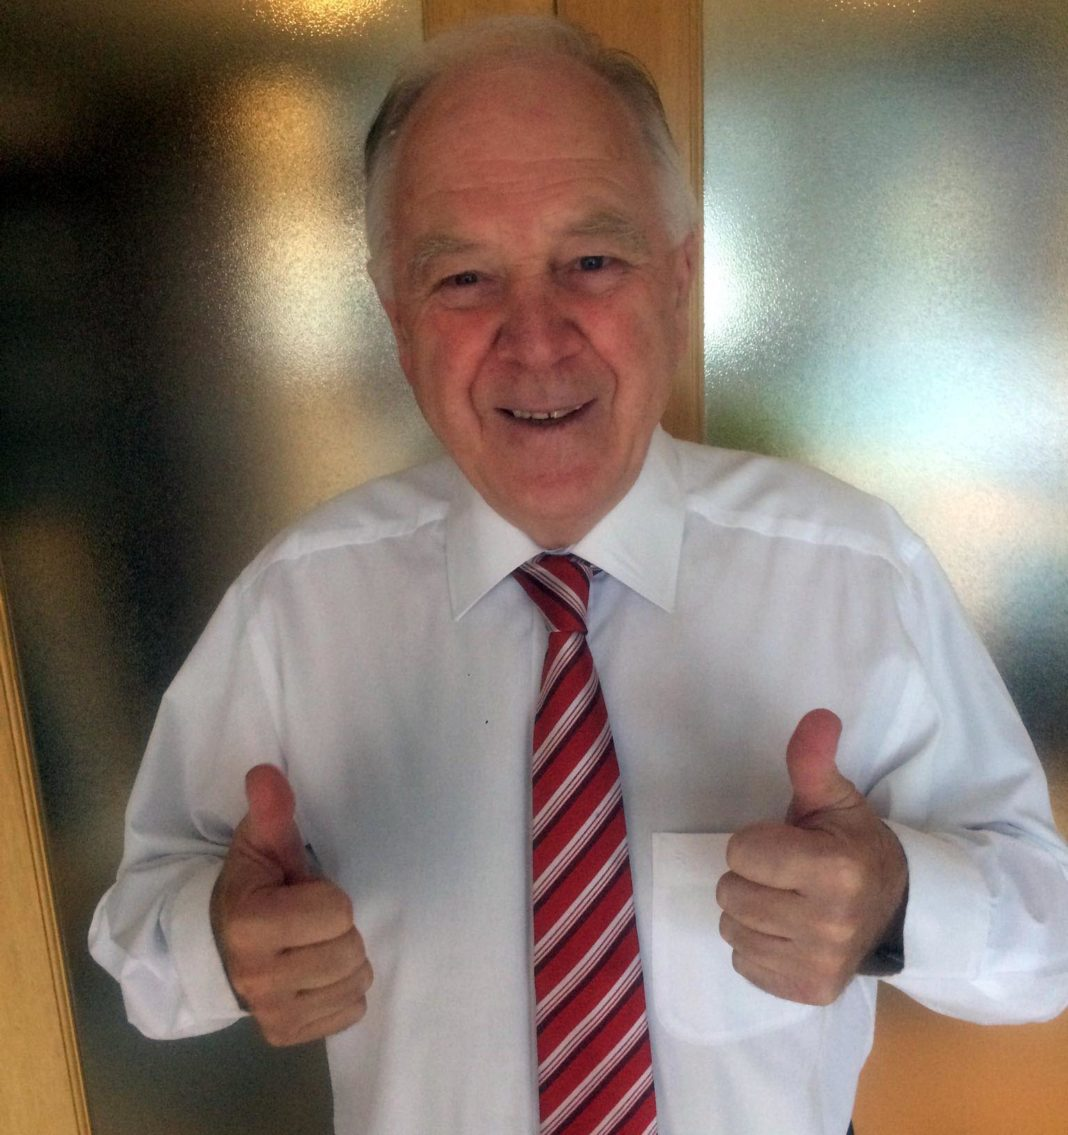 Craig gives the thumbs up to Stevie after award of BEM in The Queen's new year's honours list.